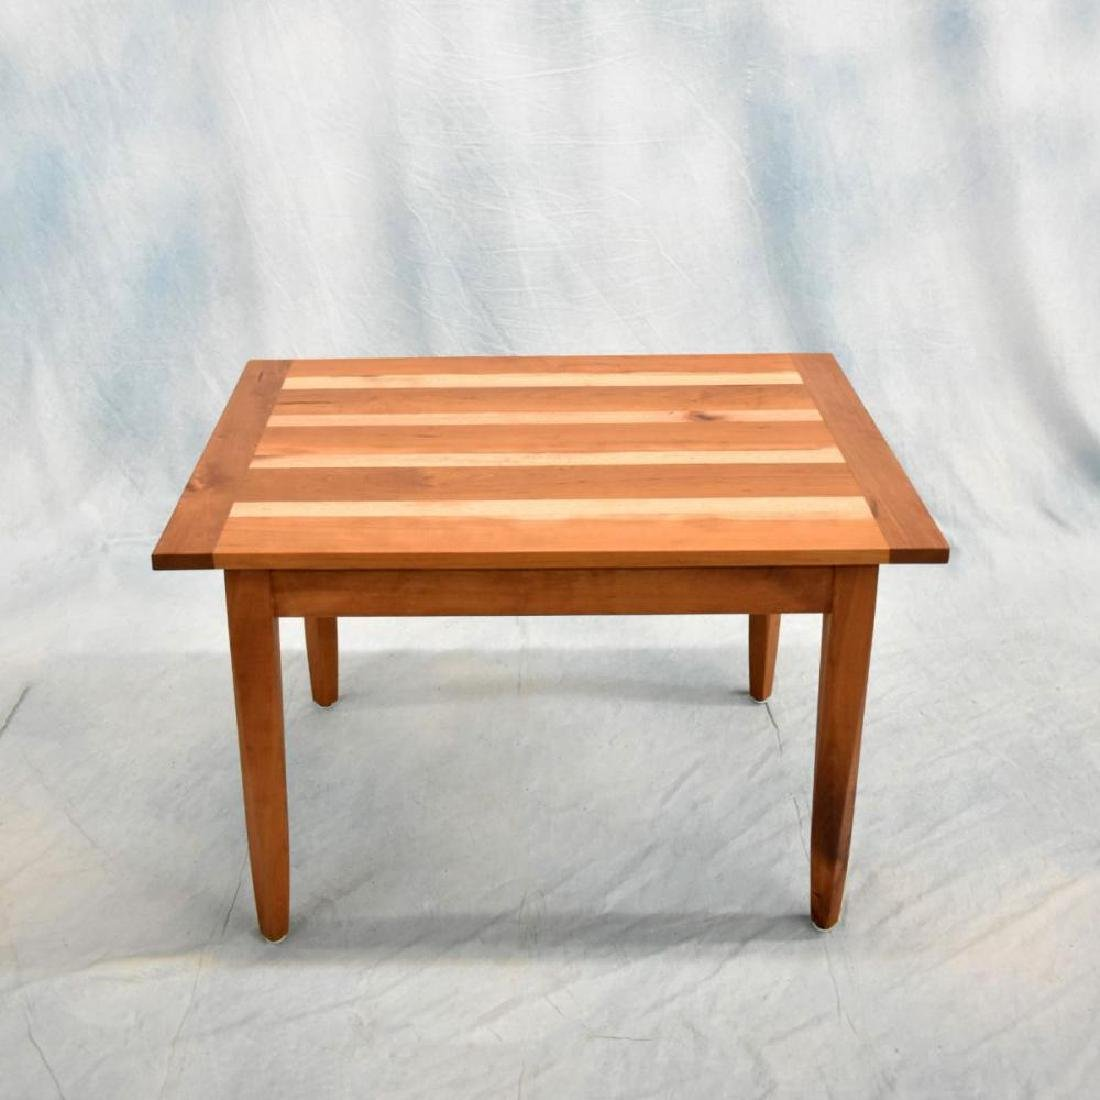 Handmade Cherry & Oak Coffee Table (By Chattanooga